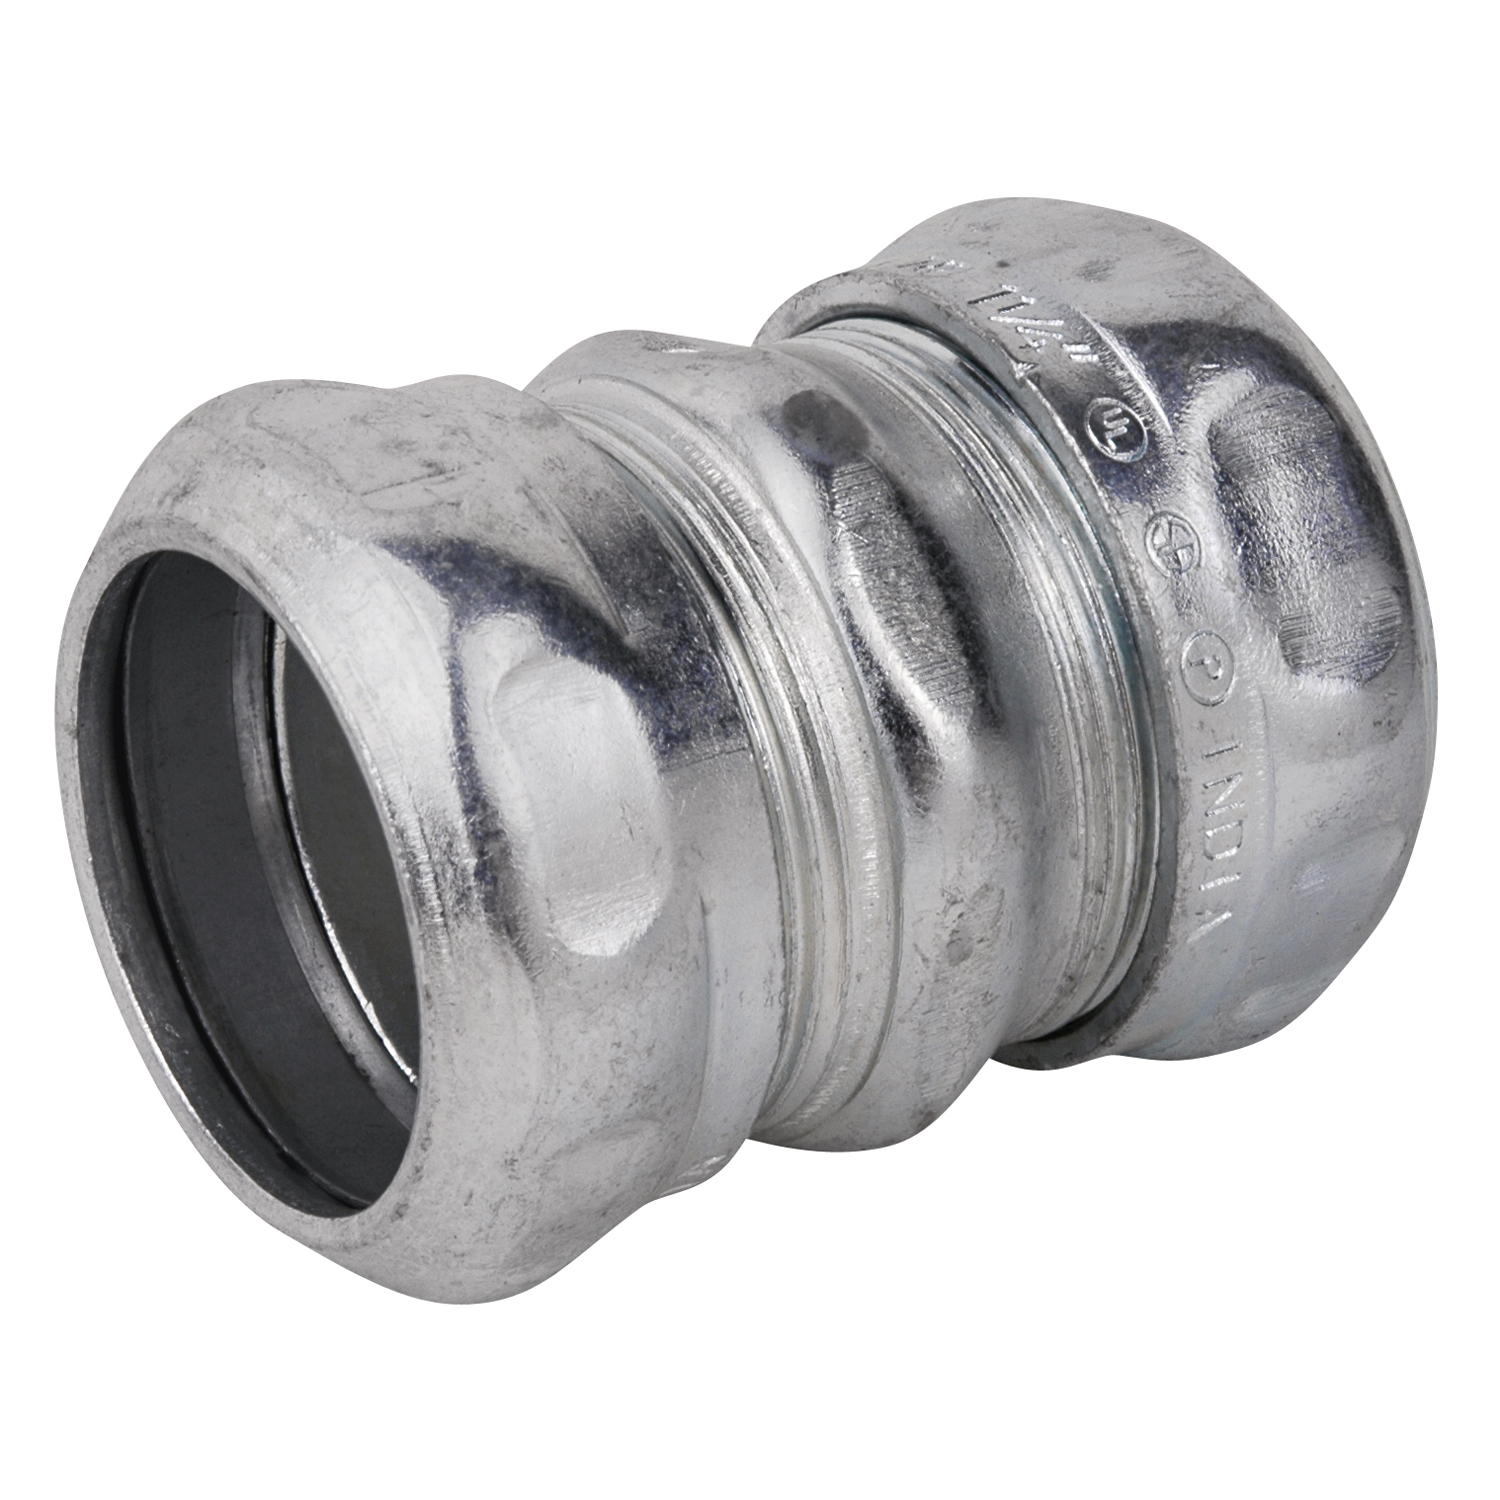 Steel City,TK114A,Steel City® TK114A Compression Thinwall Coupling, 1-1/4 in, For Use With EMT Conduit, Steel, Zinc Plated